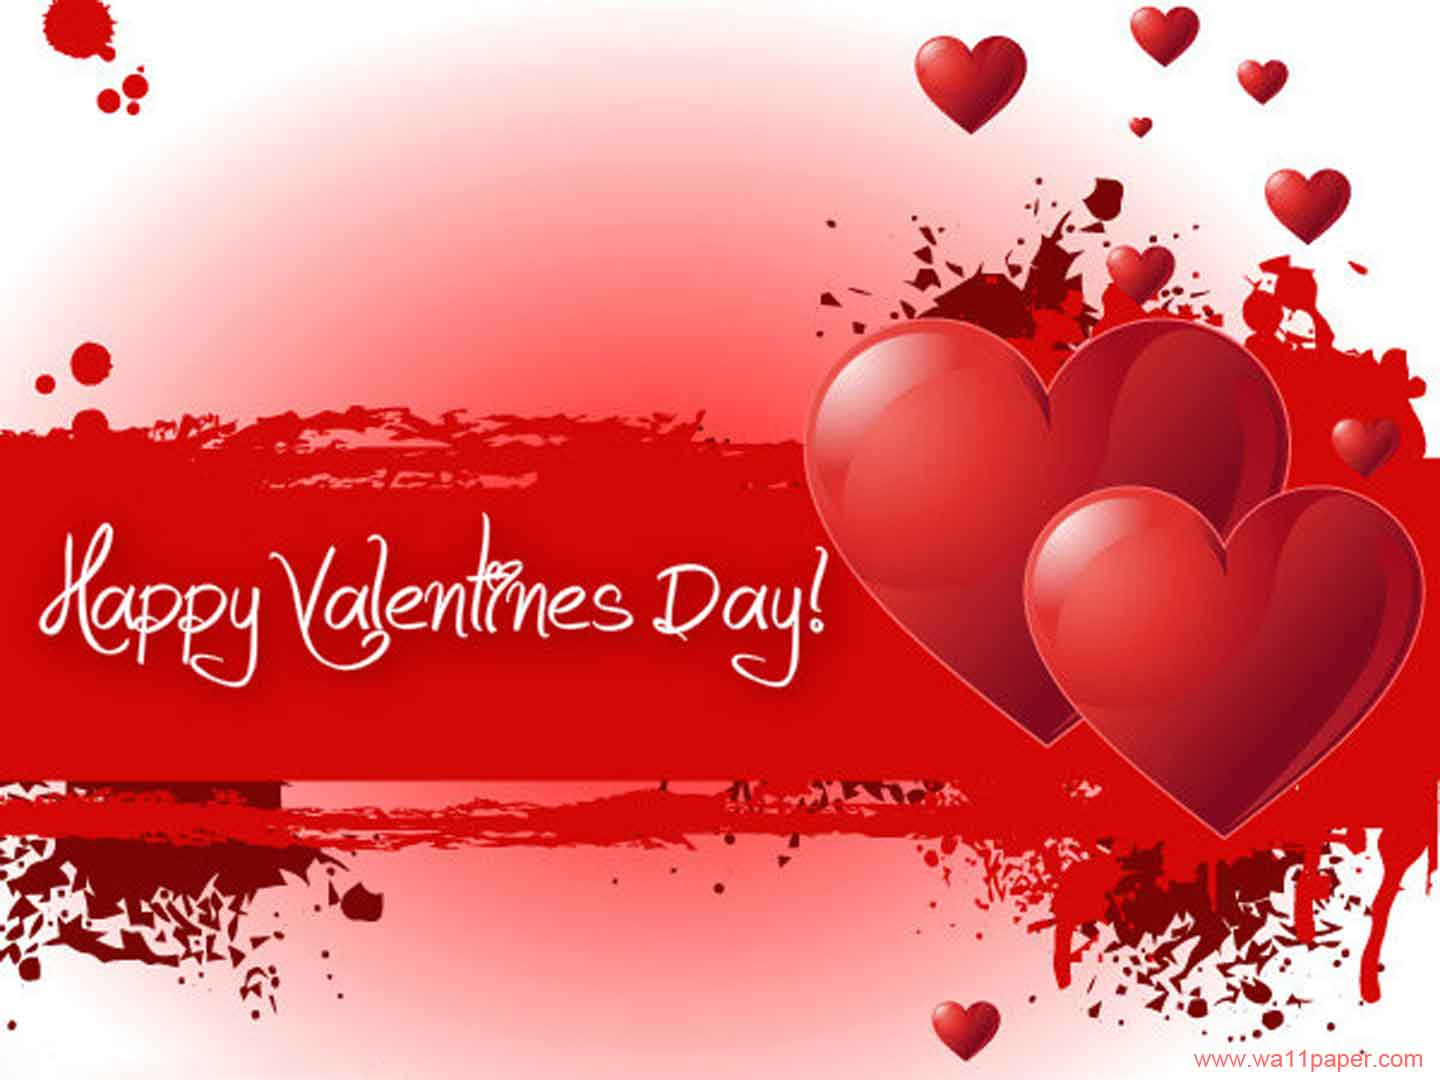 valentines day greeting cards. 1440 x 1080.Free Valentine's Day Card Download